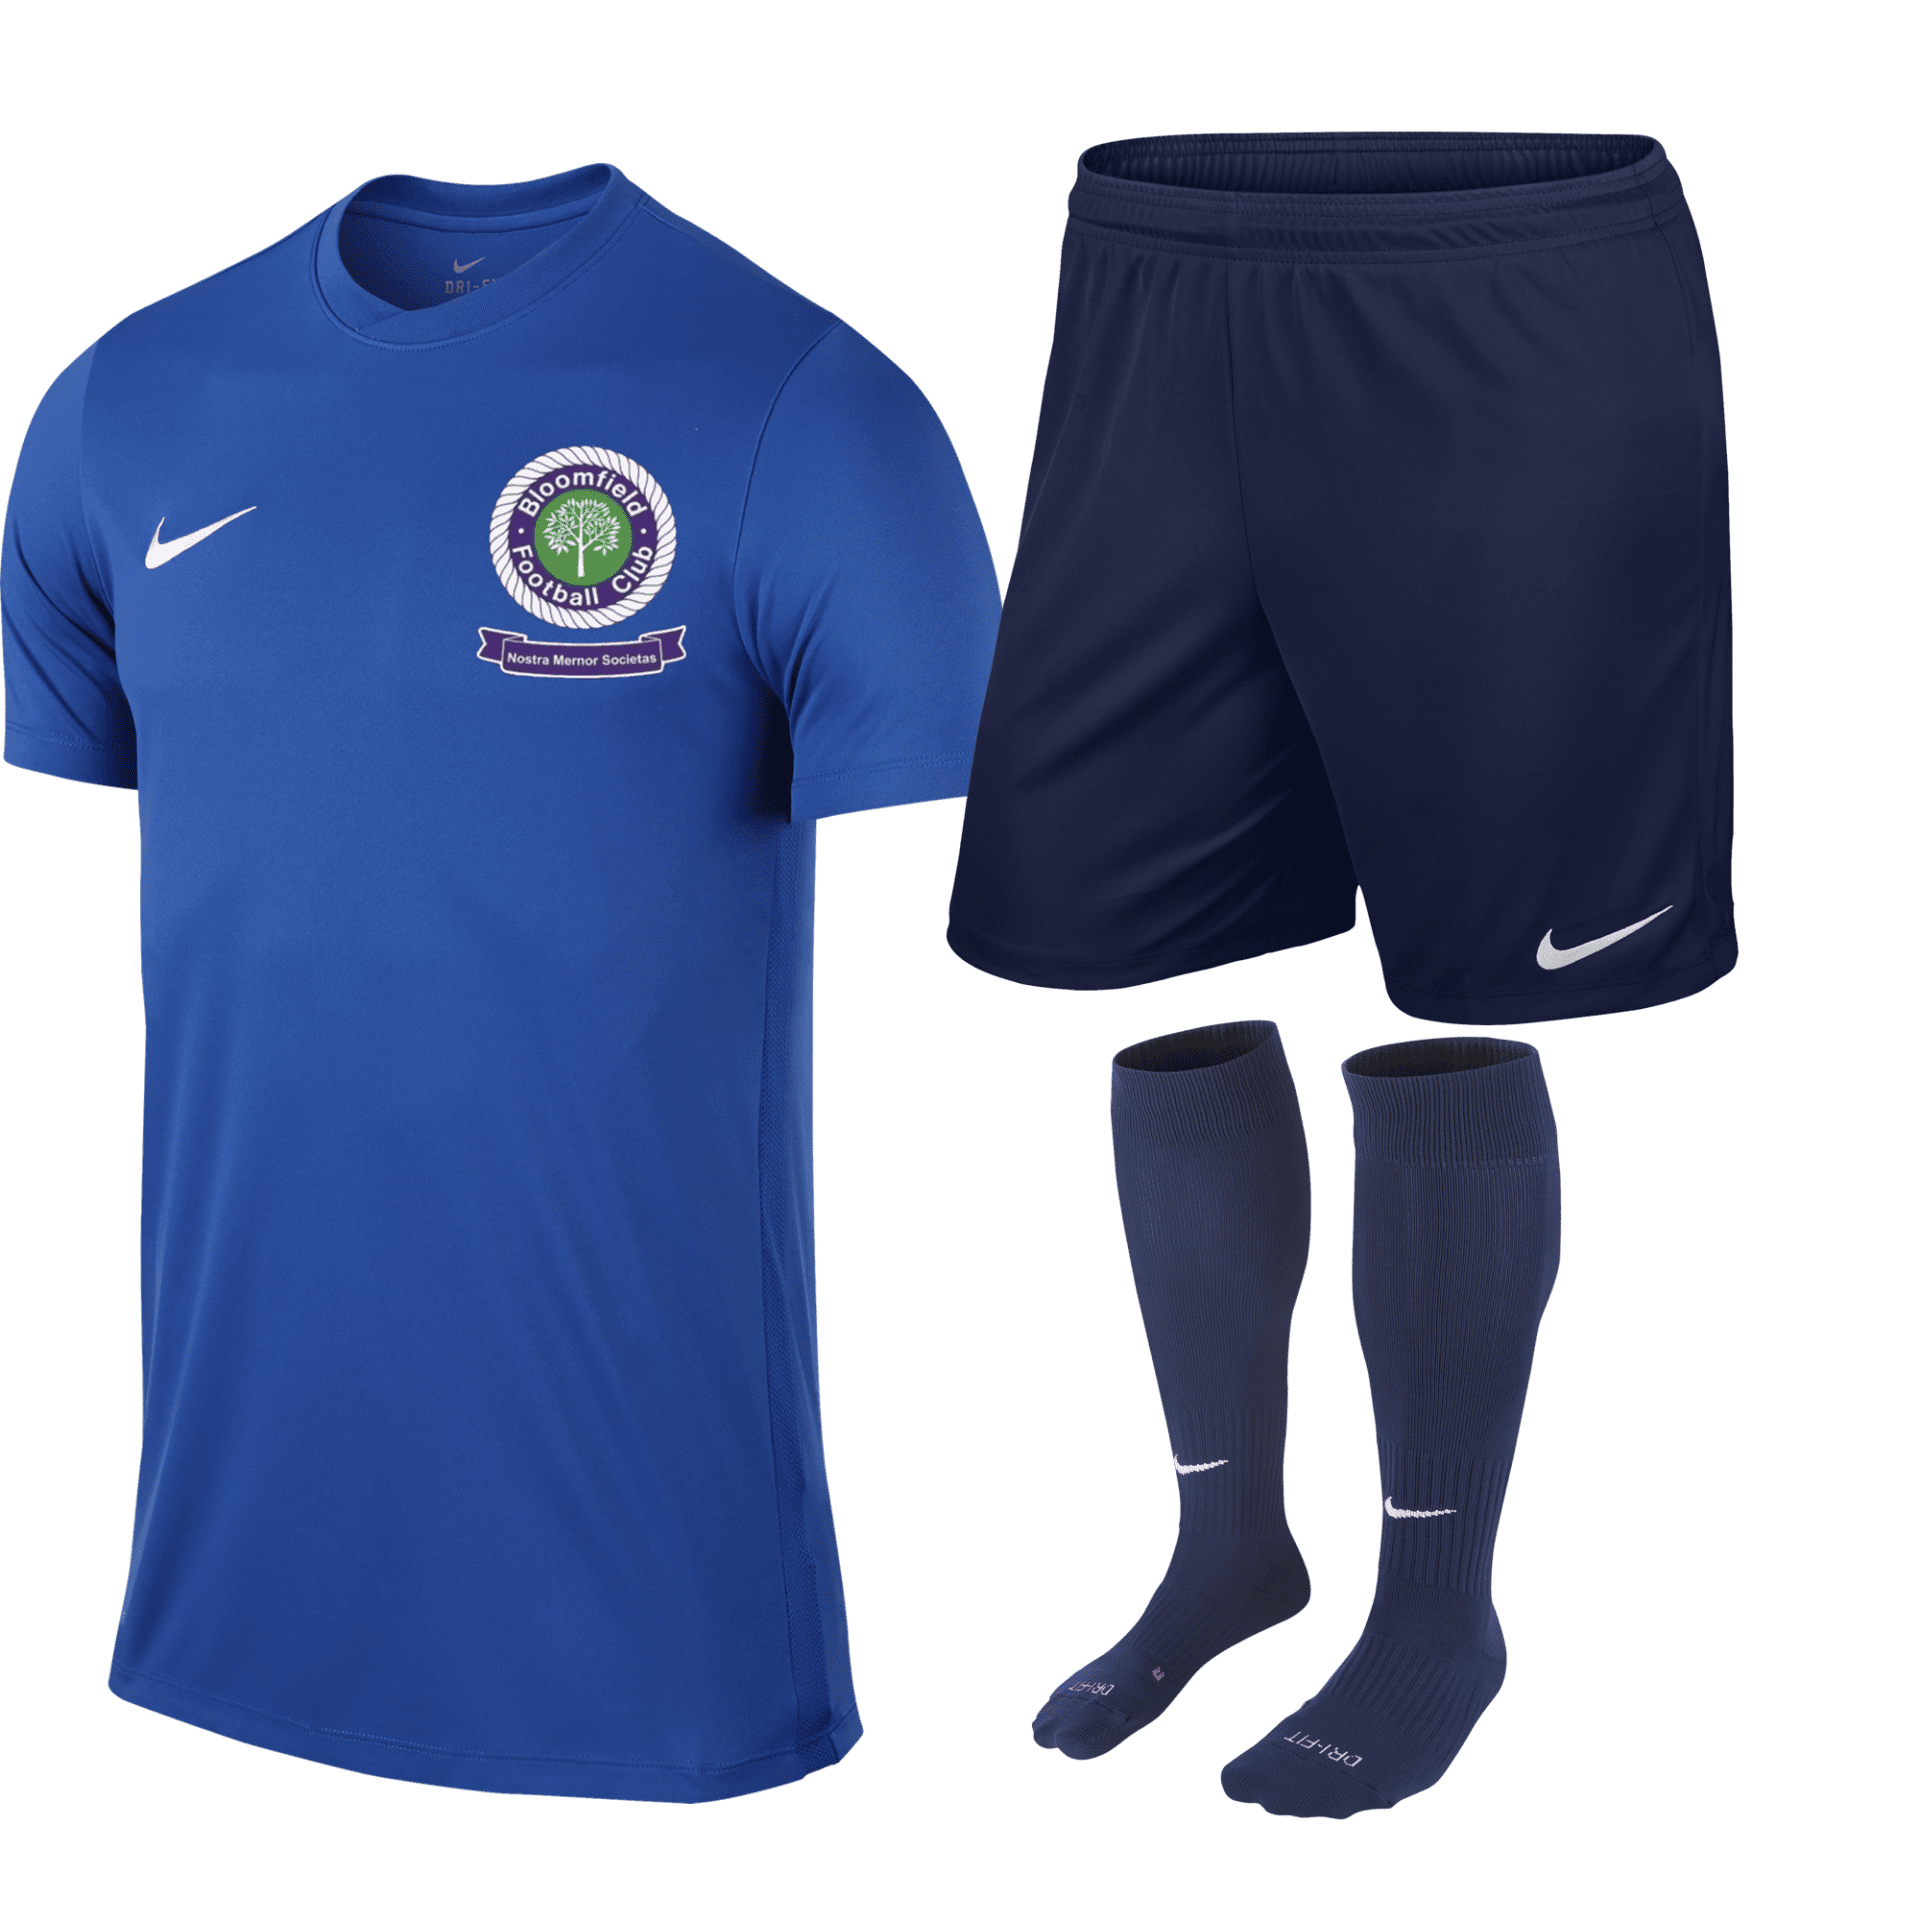 bloomfield training kit 31405 p